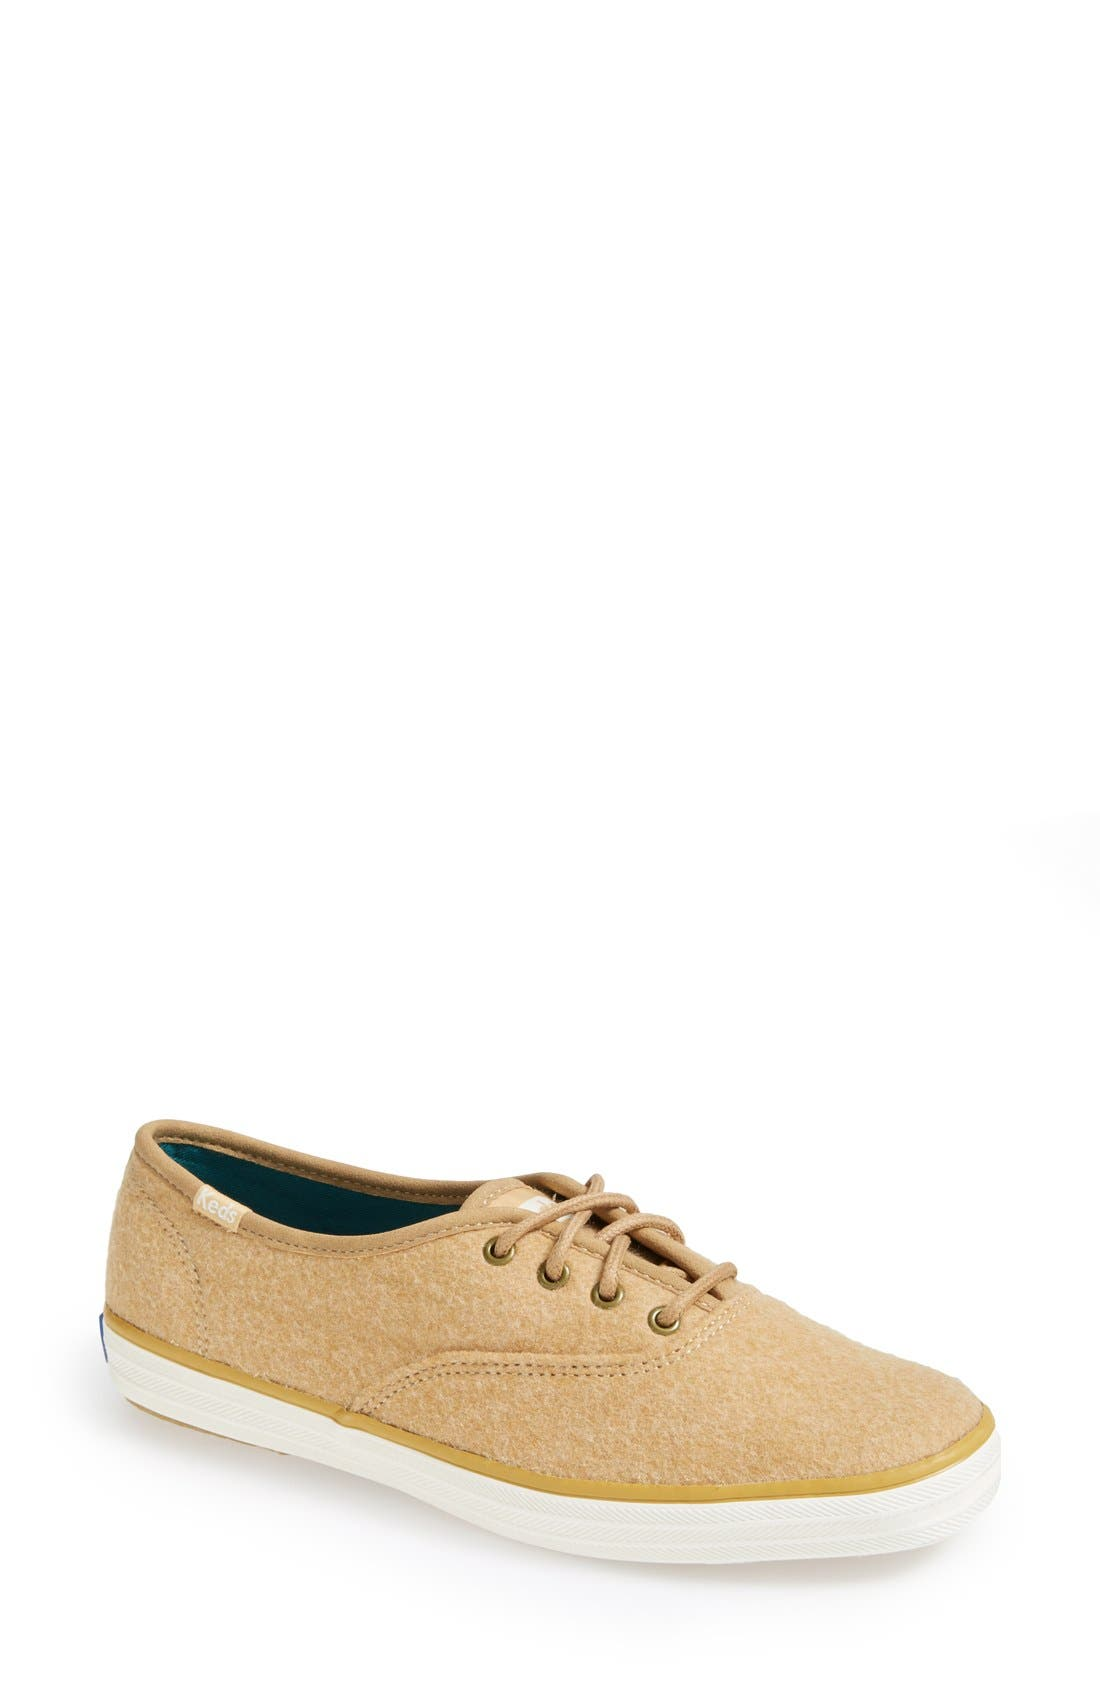 Alternate Image 1 Selected - Keds® 'Champion Felt' Sneaker (Women)